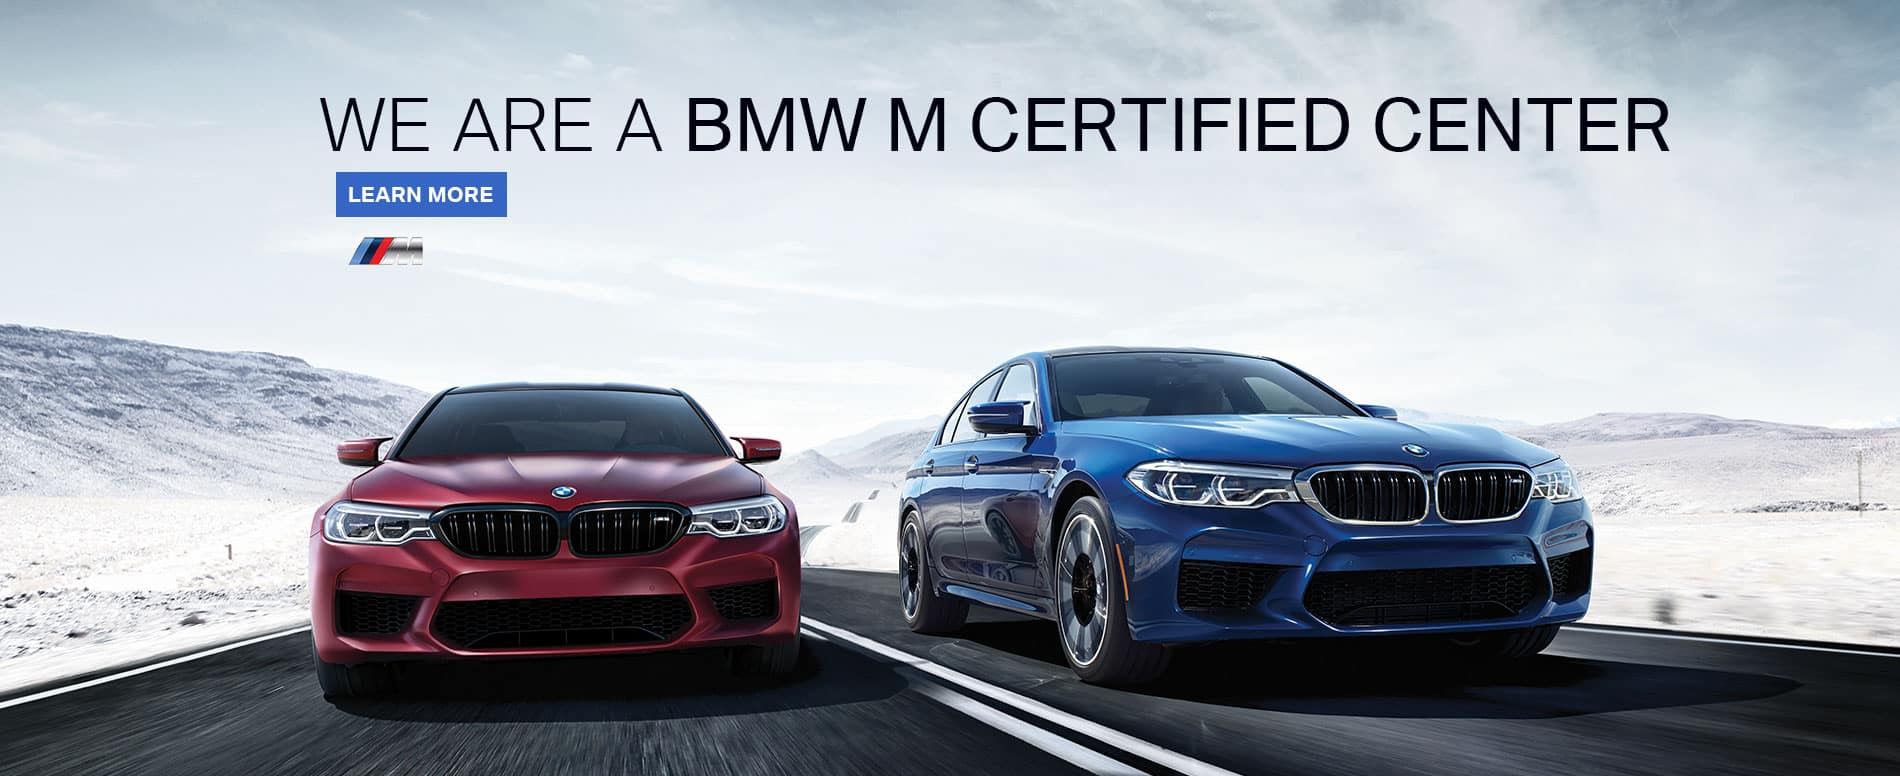 Bmw Dealers Long Island >> Habberstad Bmw Of Huntington Bmw Dealer In Huntington Ny